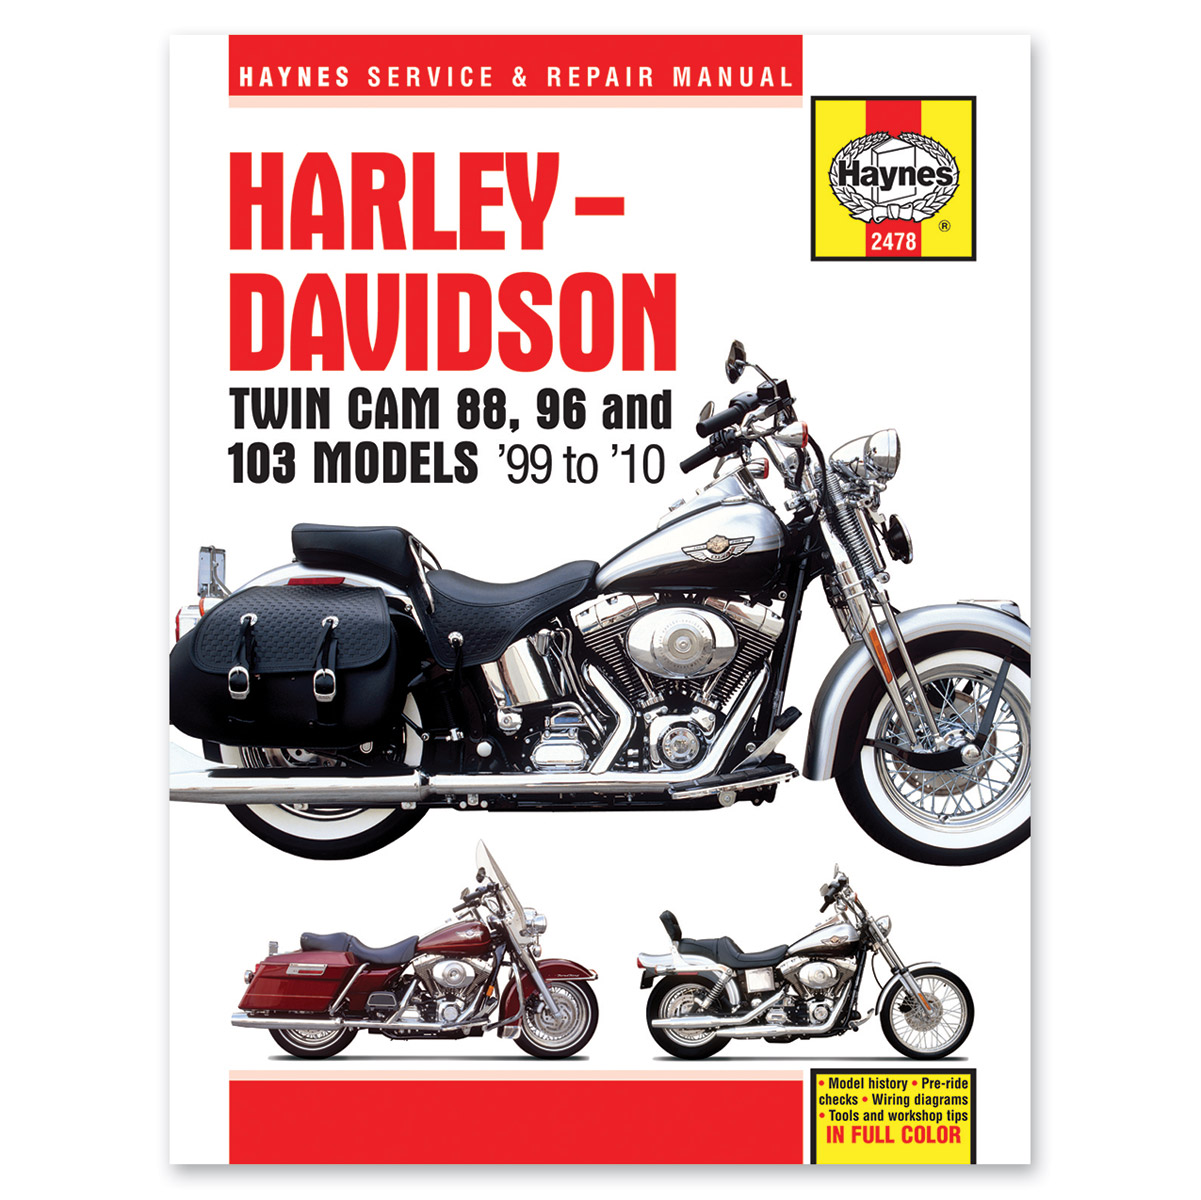 haynes twin cam manual 160 019 j p cycles rh jpcycles com 2007 road king service manual pdf 2010 road king service manual